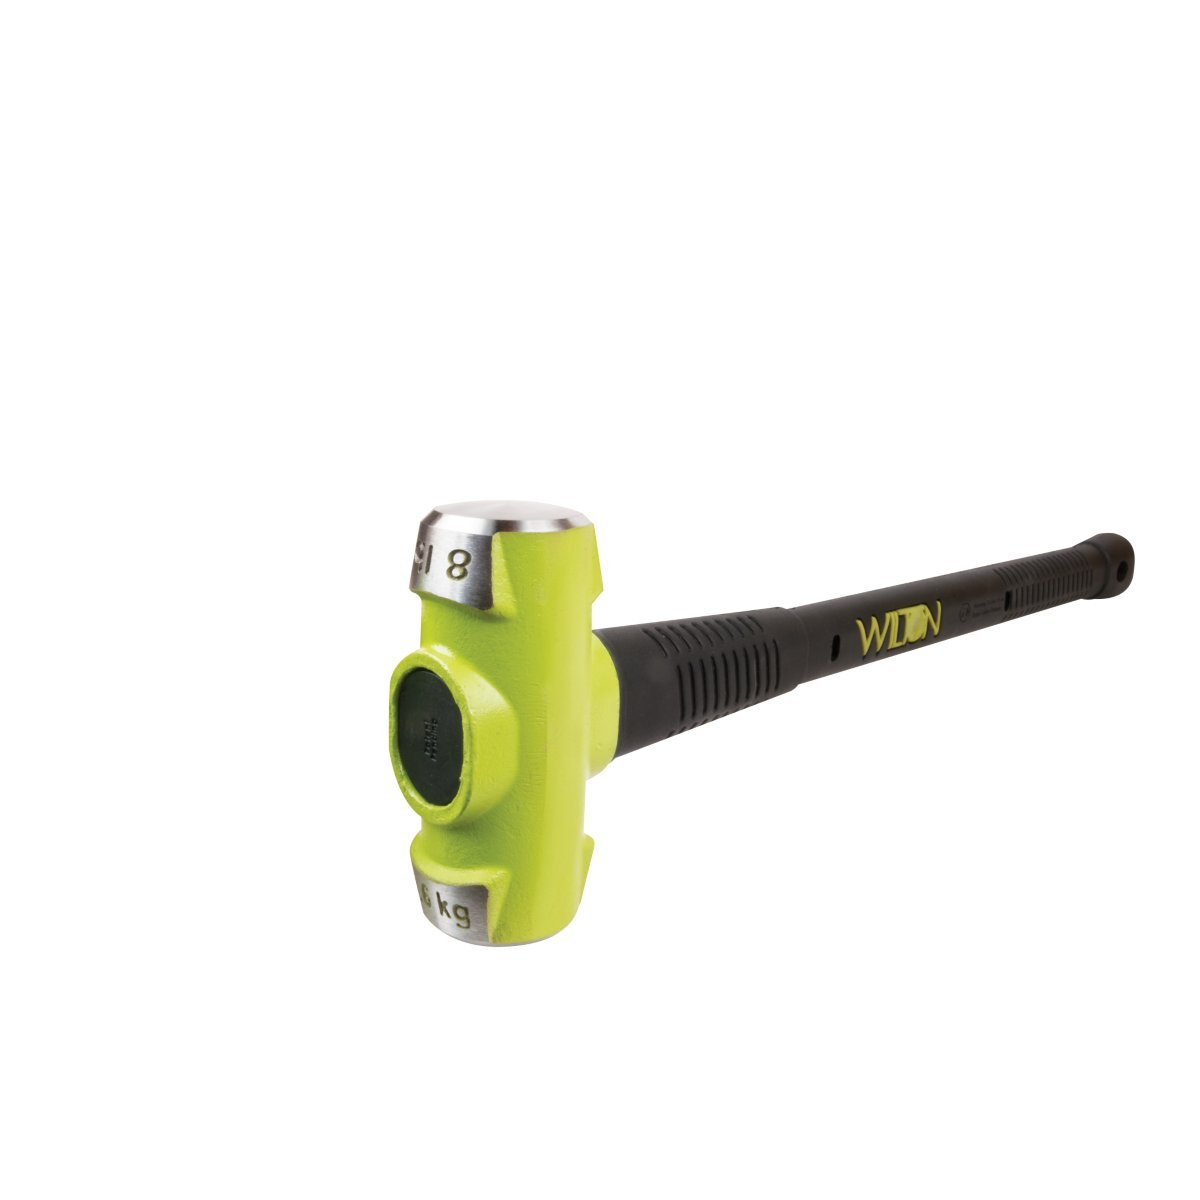 Wilton 20836 8 lb. BASH Sledge Hammer with 36-in Unbreakable Handle by Wilton